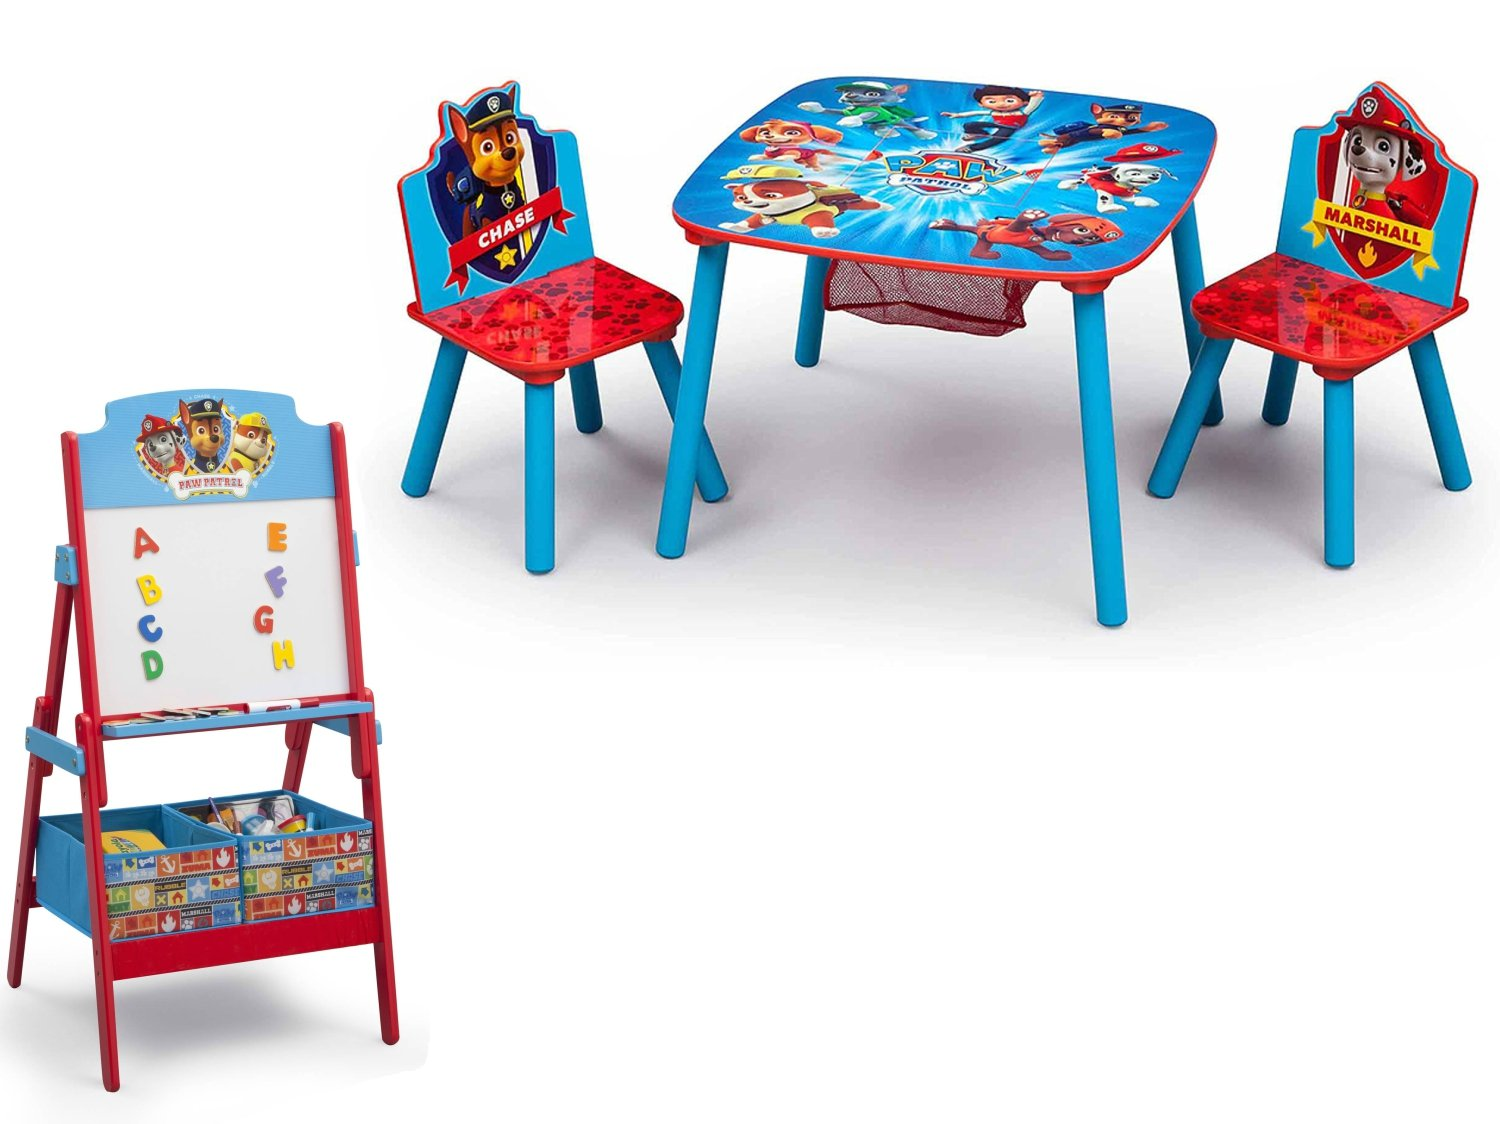 NEW! Paw Patrol Activity Table Set and Delta Children Paw Patrol Activity Easel with Toy Storage Bins